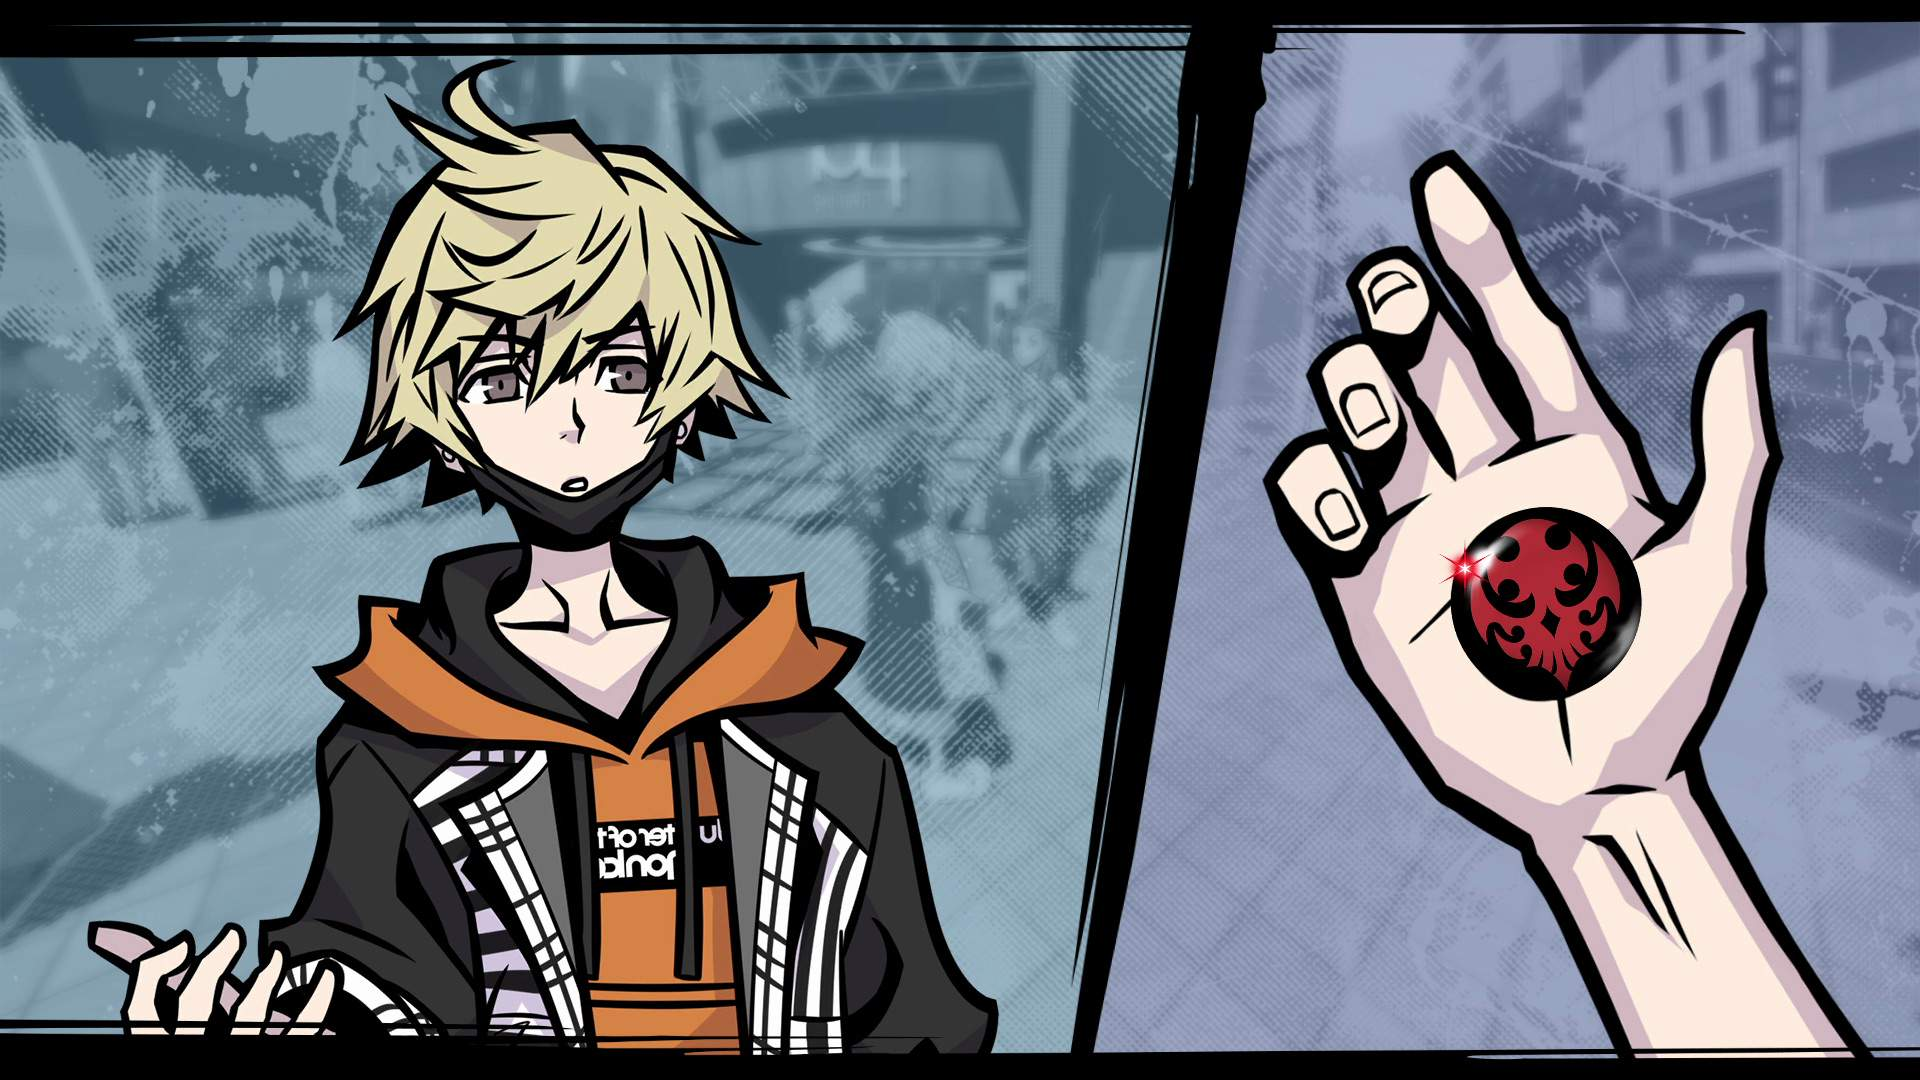 NEO: The World Ends with You hero Rindo holding a pin